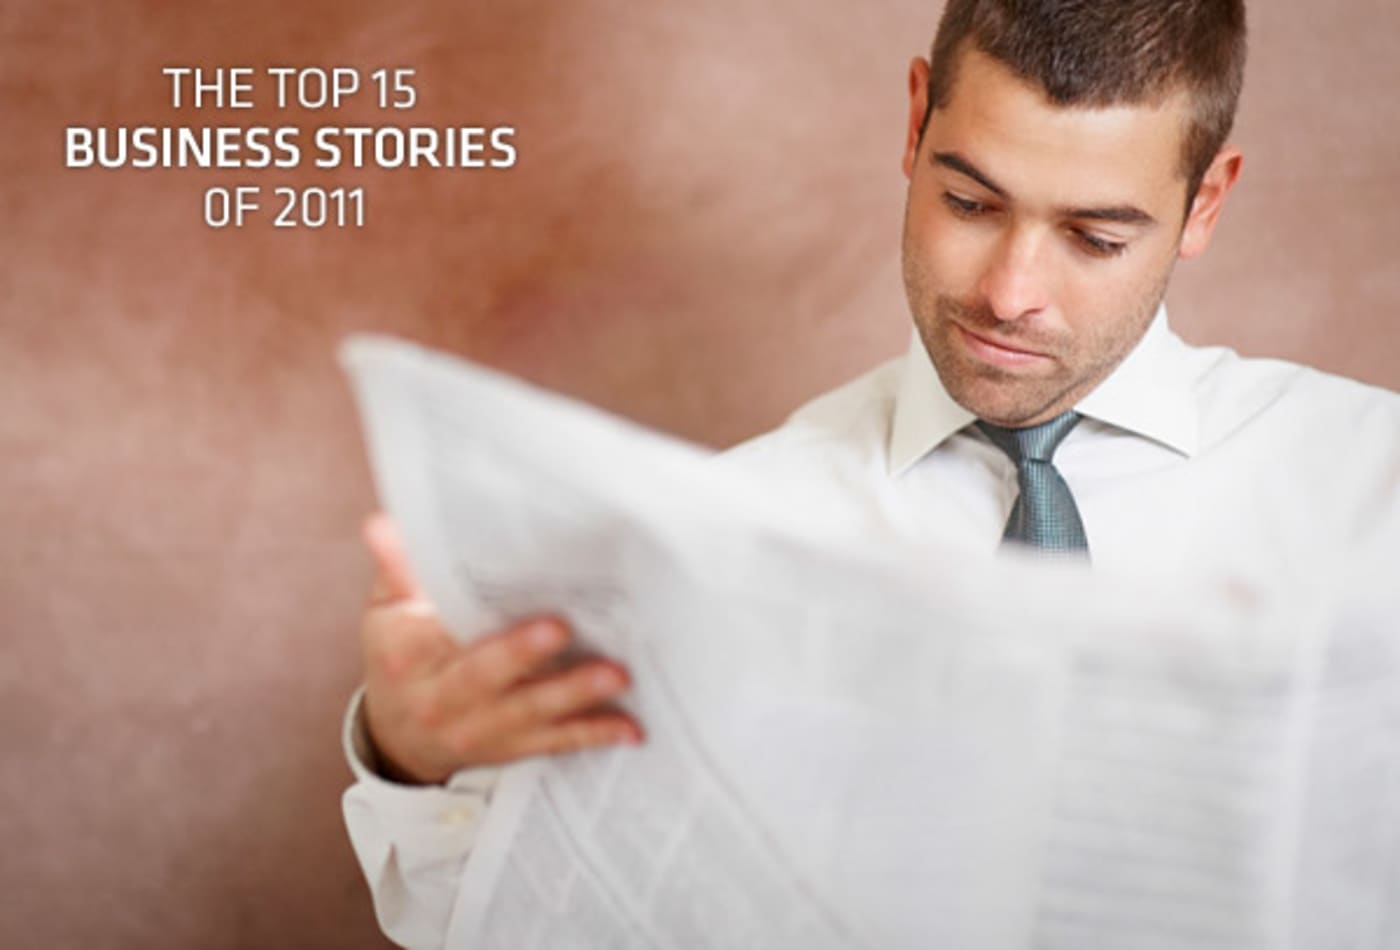 Top-Business-Stories-2011-cover.jpg